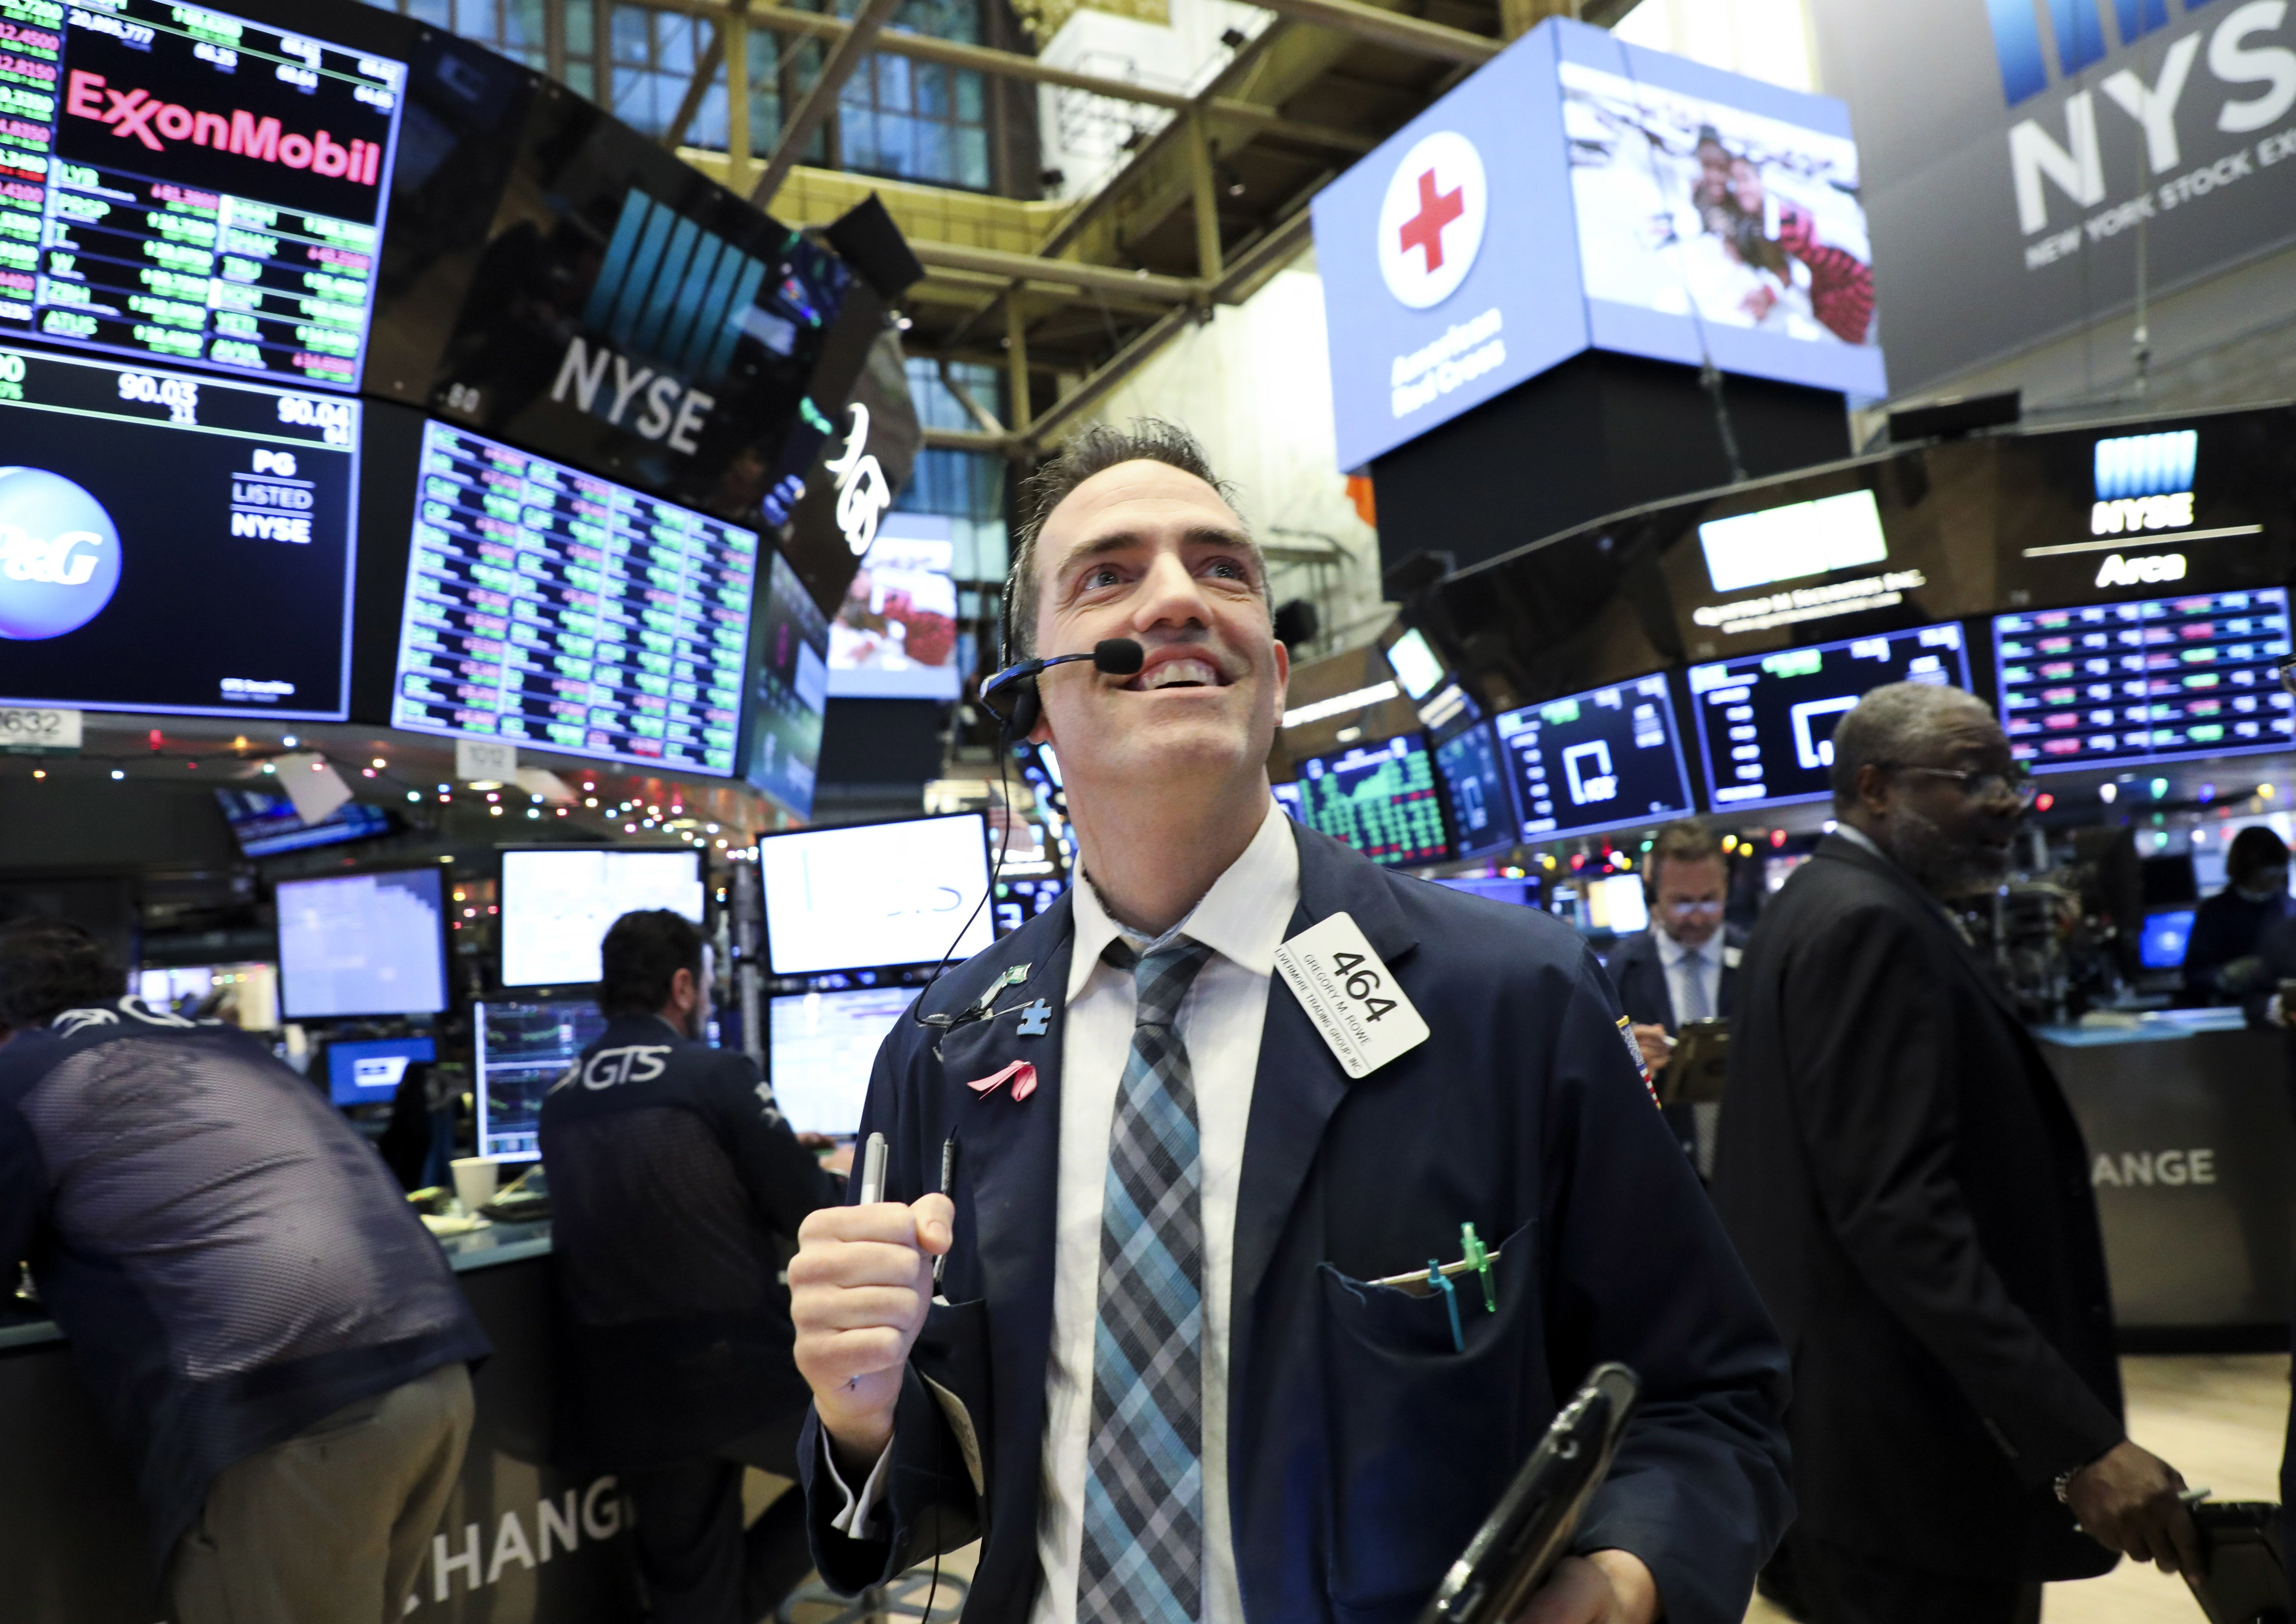 Traders work at the New York Stock Exchange in New York, the United States.